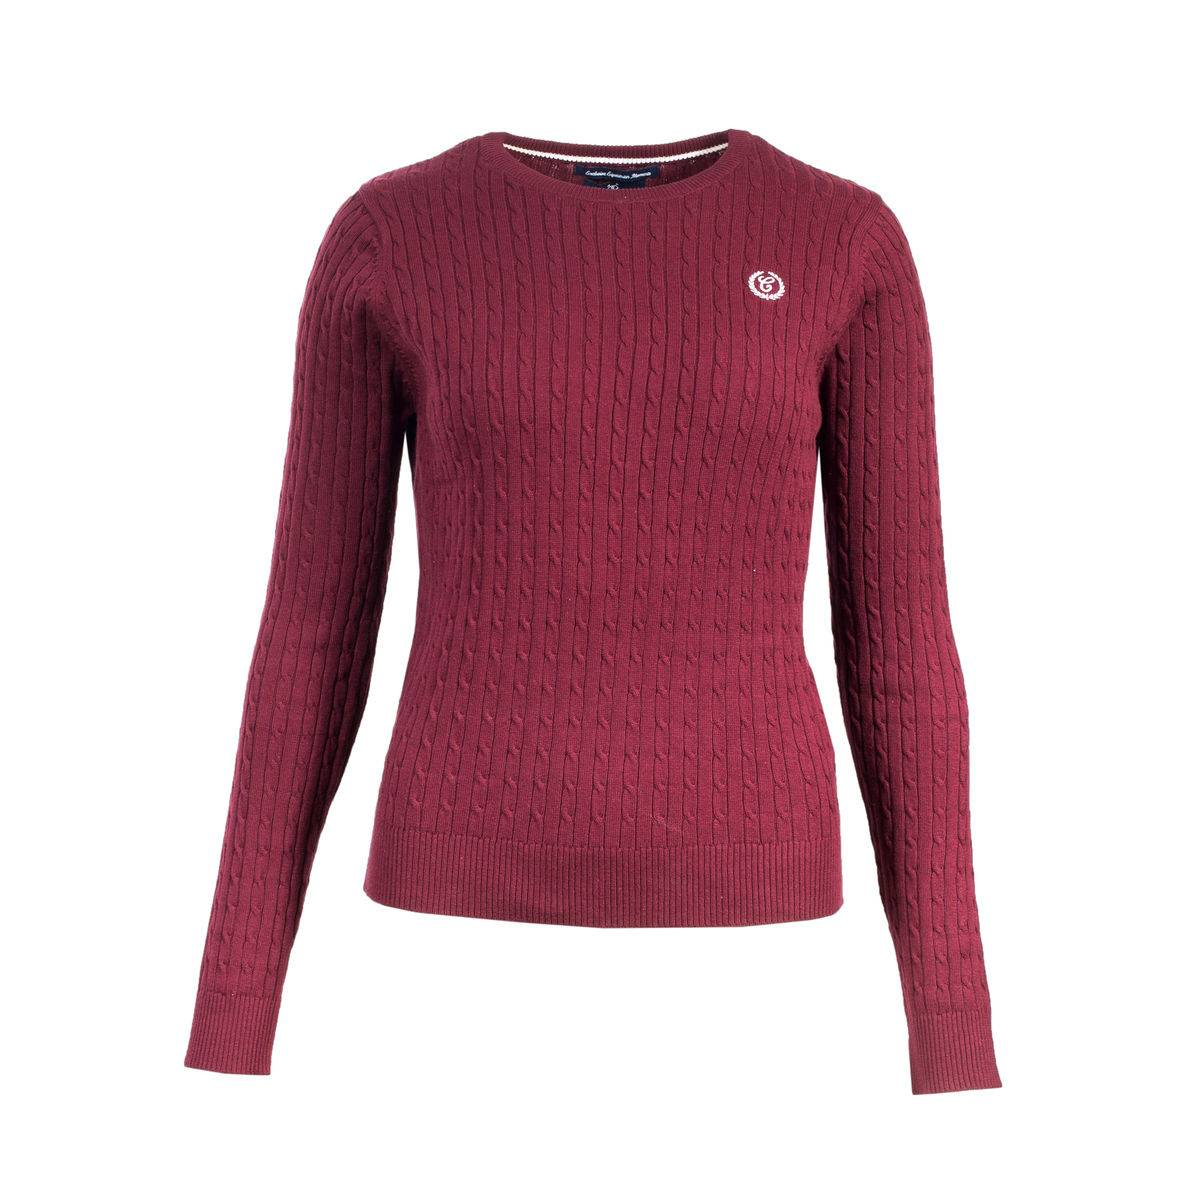 Horze Crescendo Reanna Pullover Sweater - Ladies